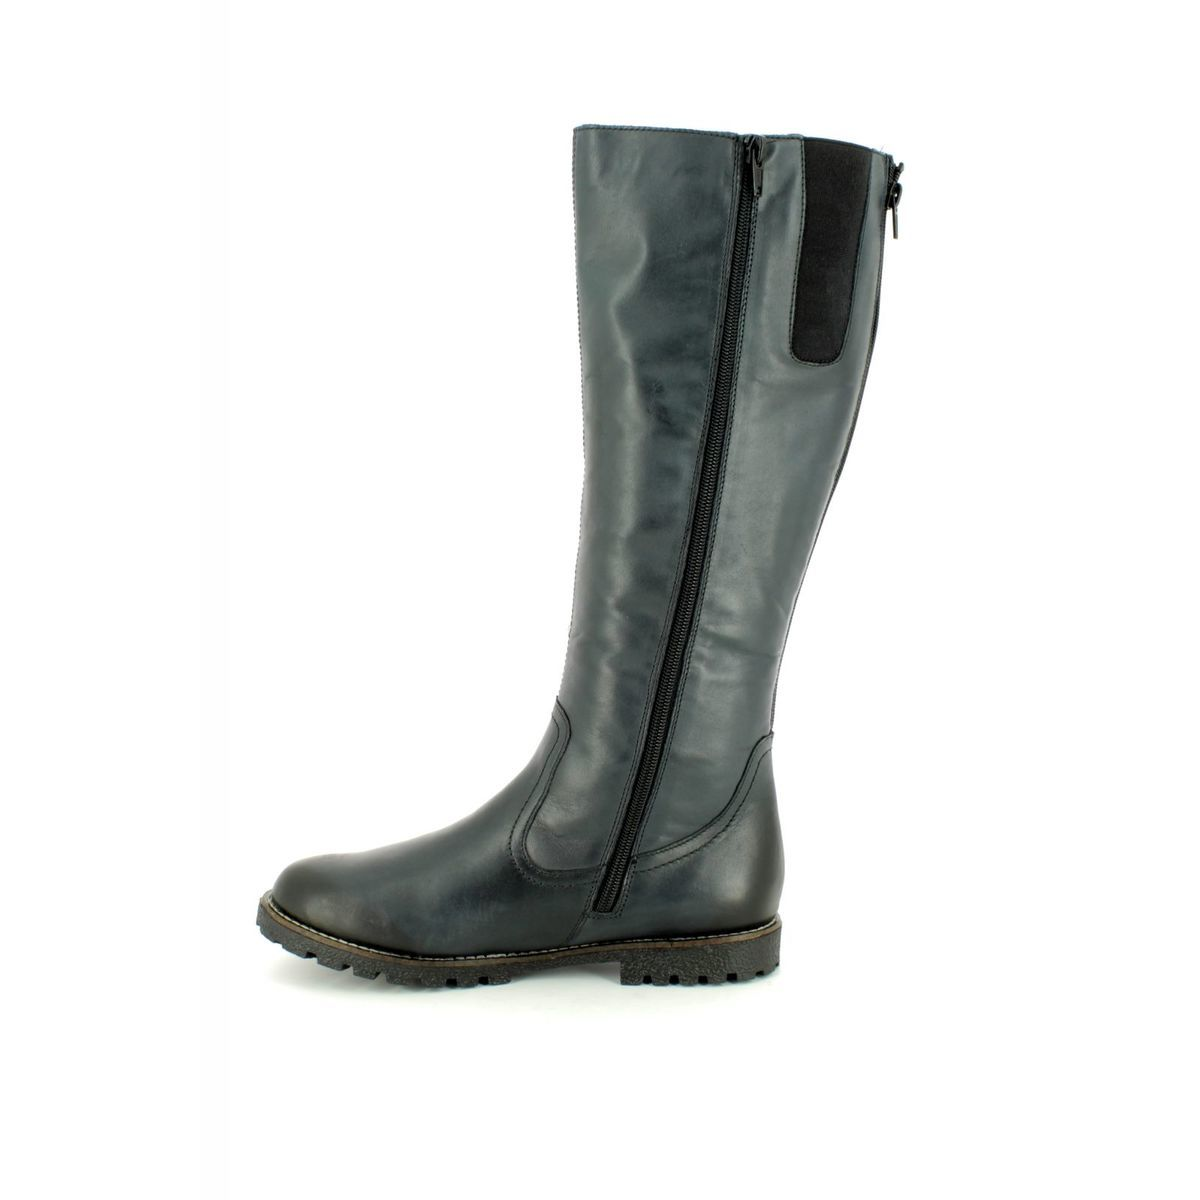 Leather Boots 1 1 25509 21: Buy Tamaris Boots online!